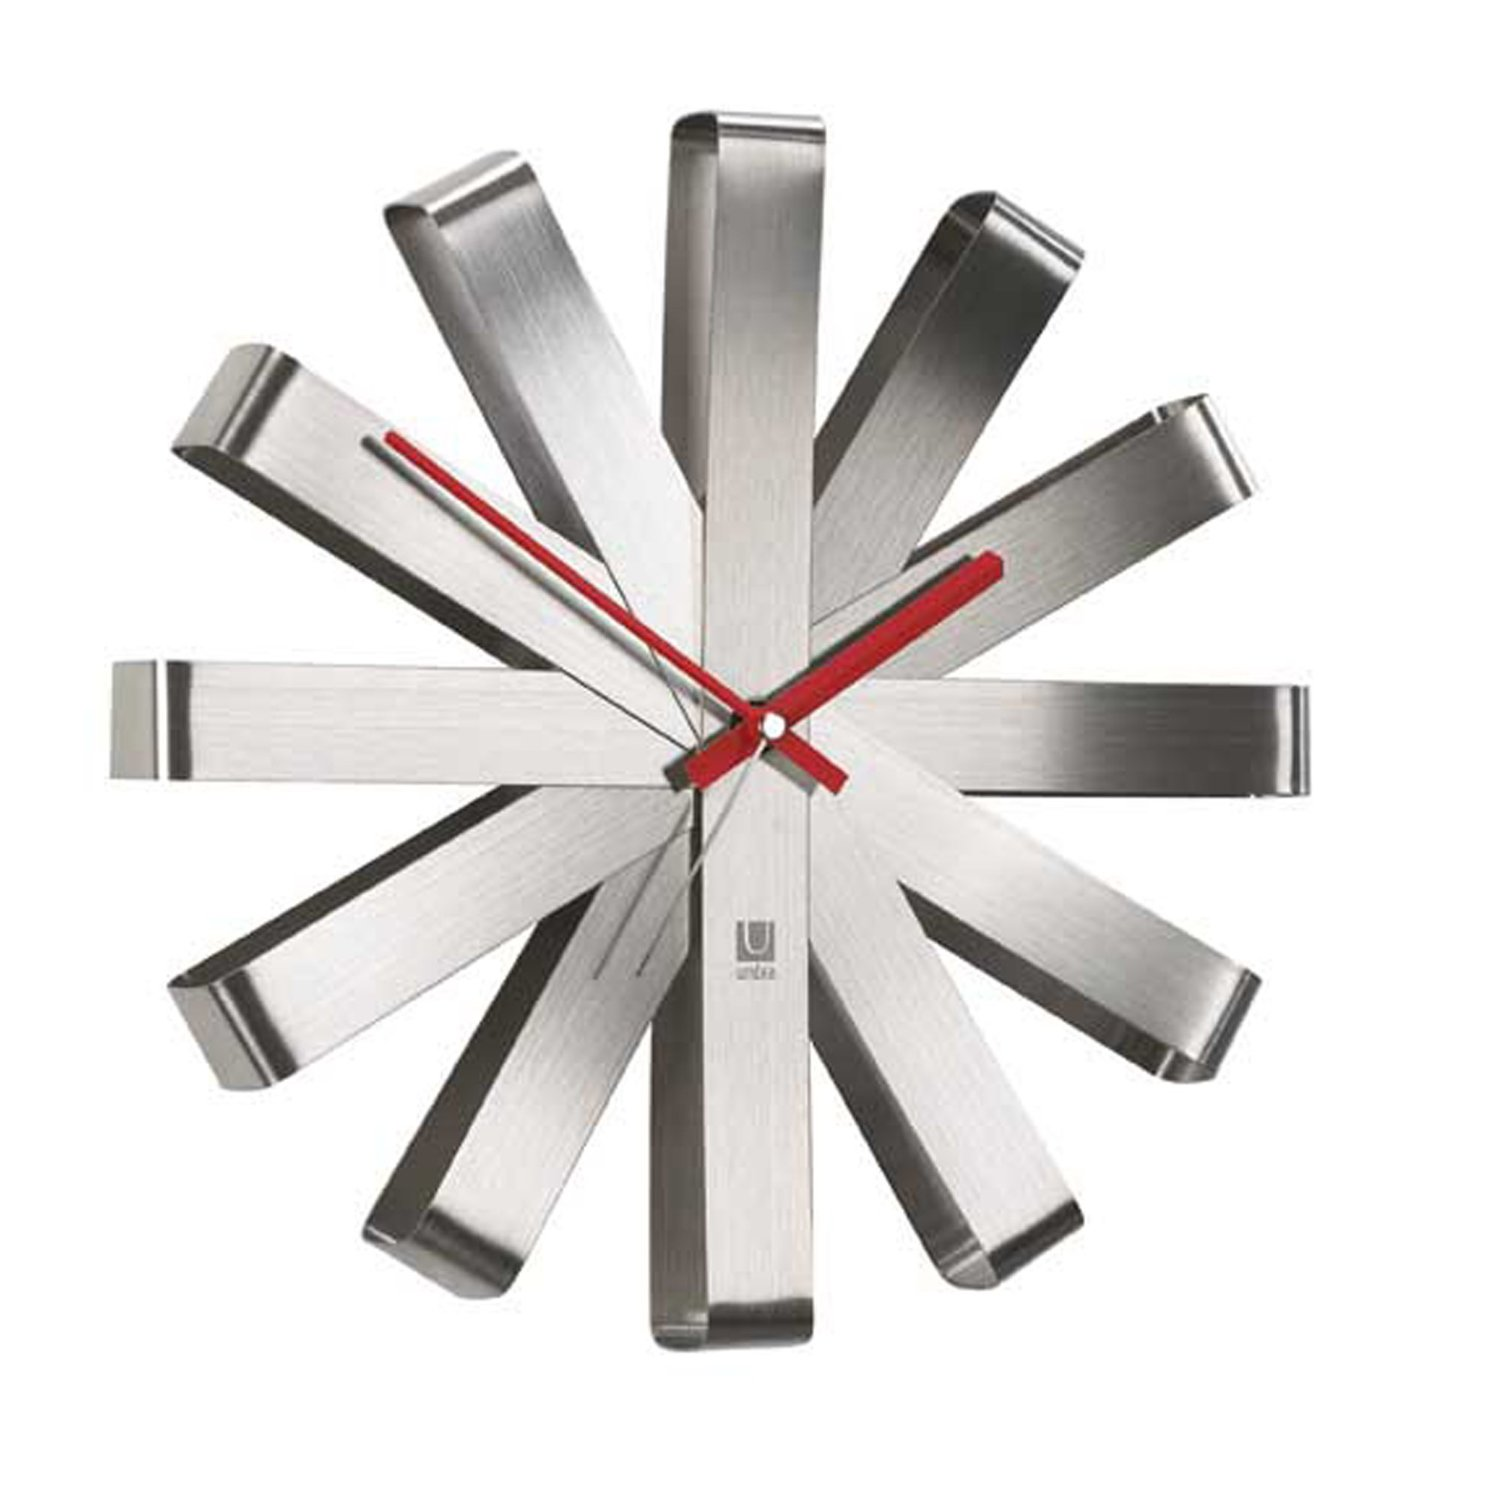 Amusing Design Of The Wall Clocks Ideas With Silver Color Ideas With No Number Added With Red Clock Point Ideas